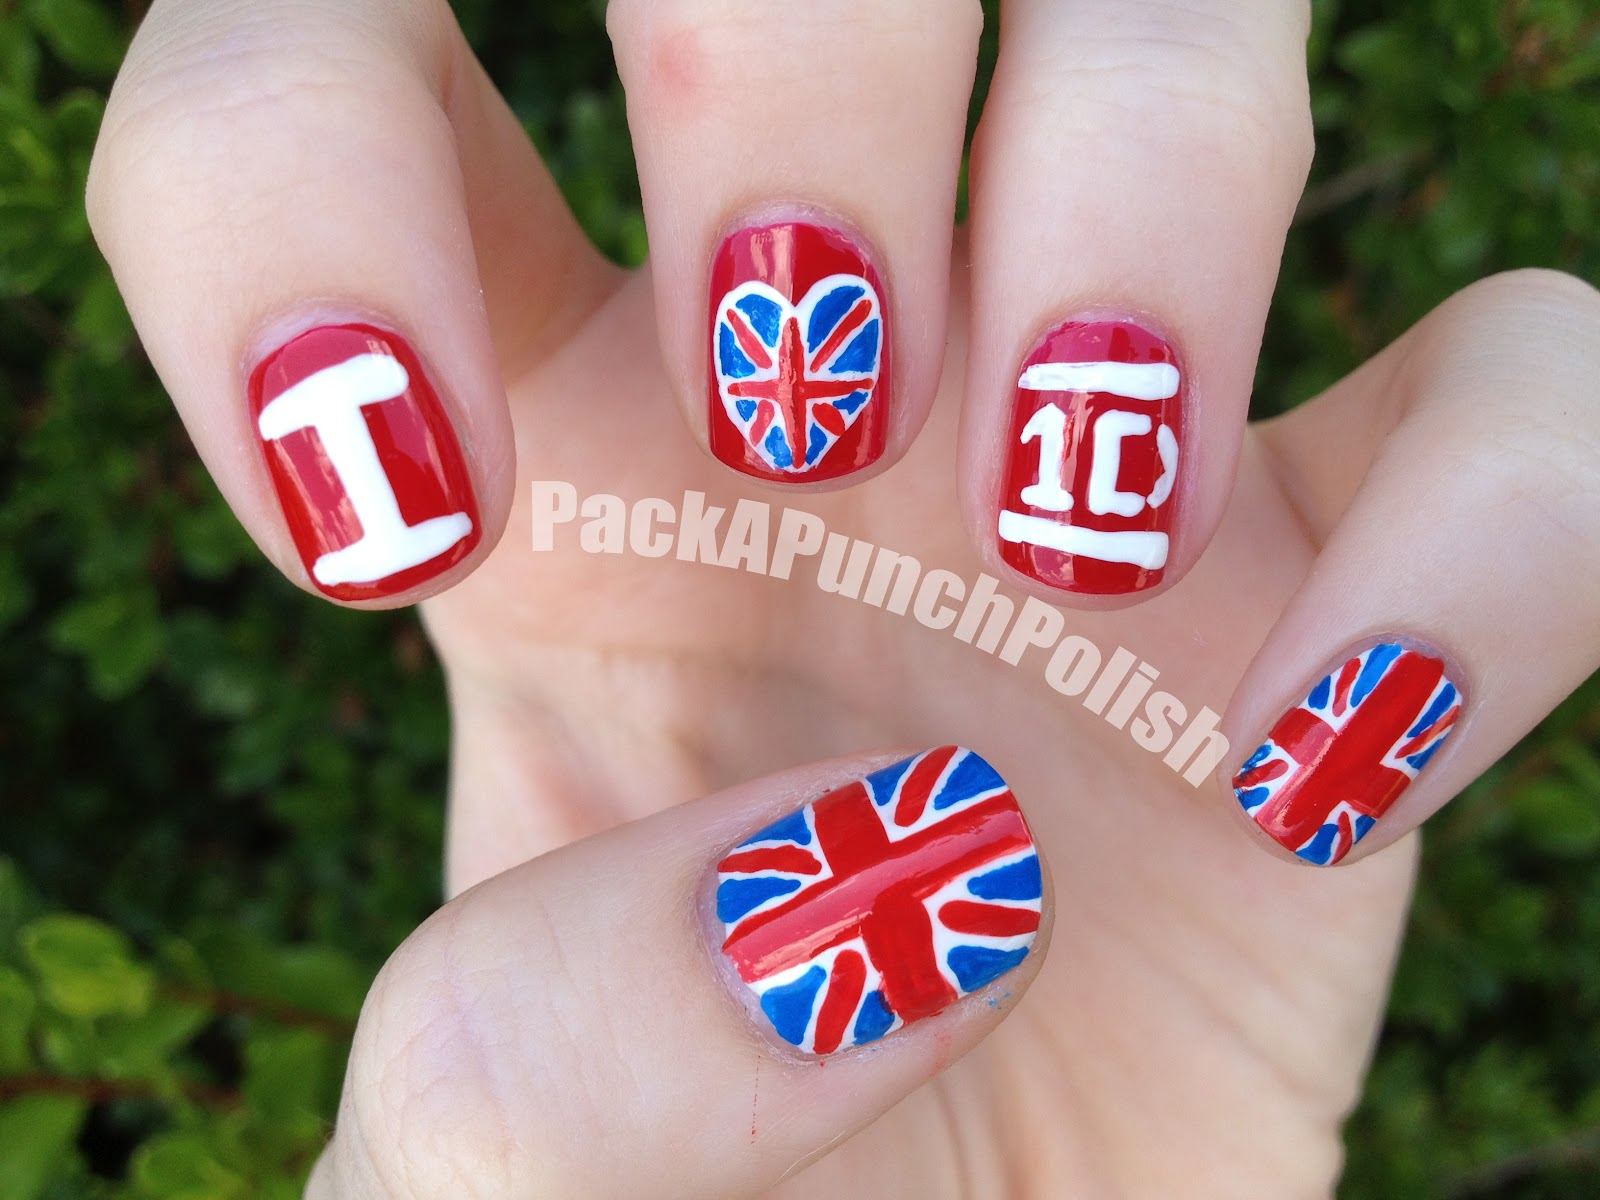 PackAPunchPolish: One Direction Nail Art